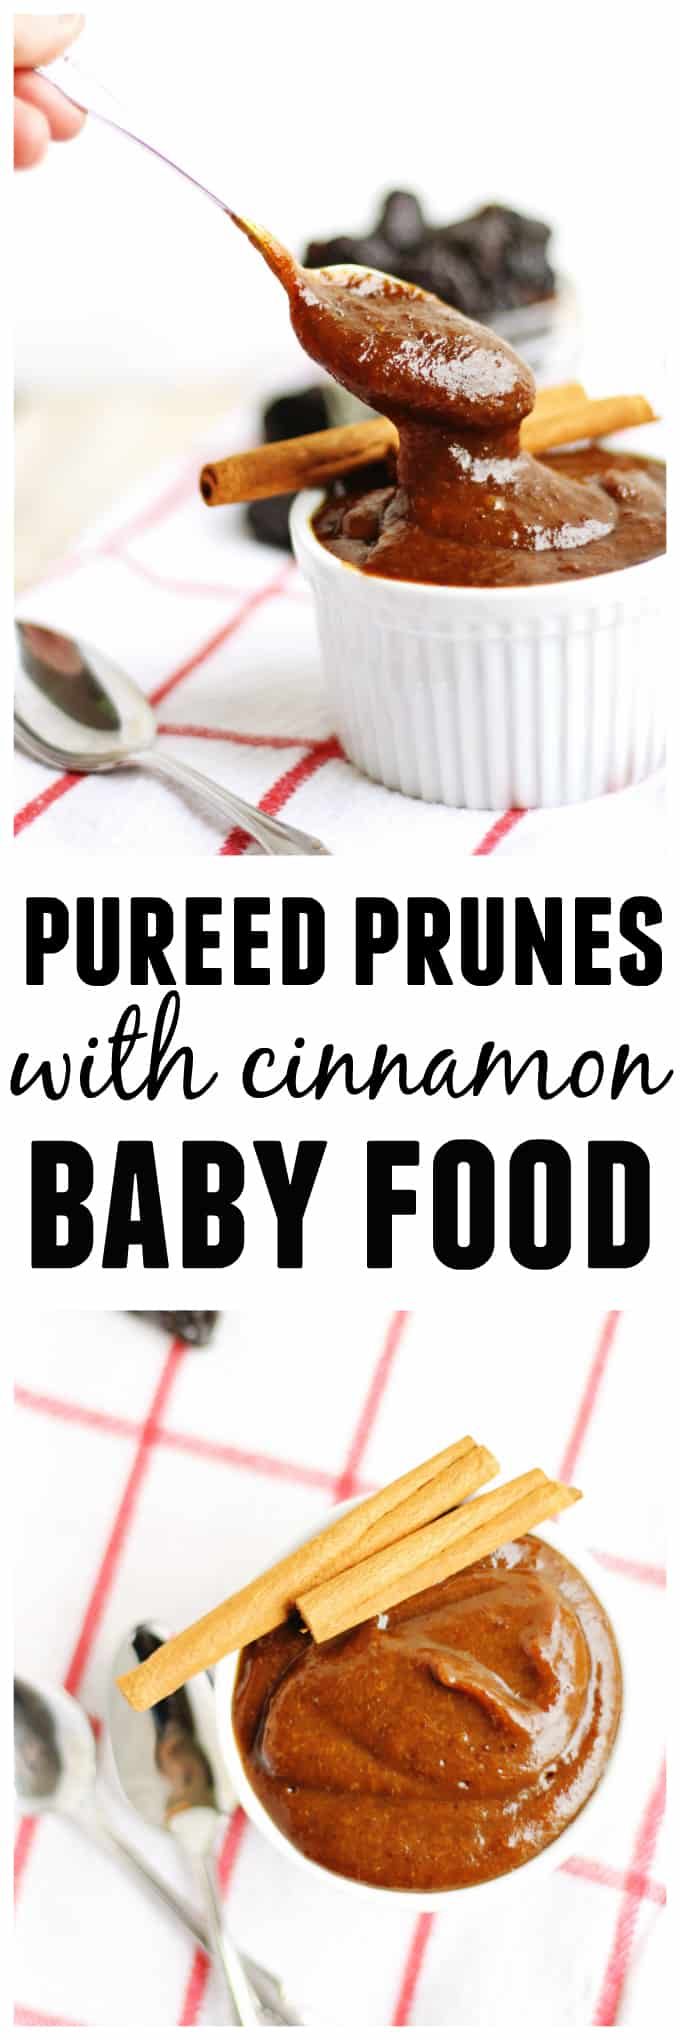 Naturally help your baby's digestion with this homemade baby food recipe! Quick and easy pureed prunes with cinnamon are naturally sweetened, and taste absolutely delicious. SO EASY! // Rhubarbarians